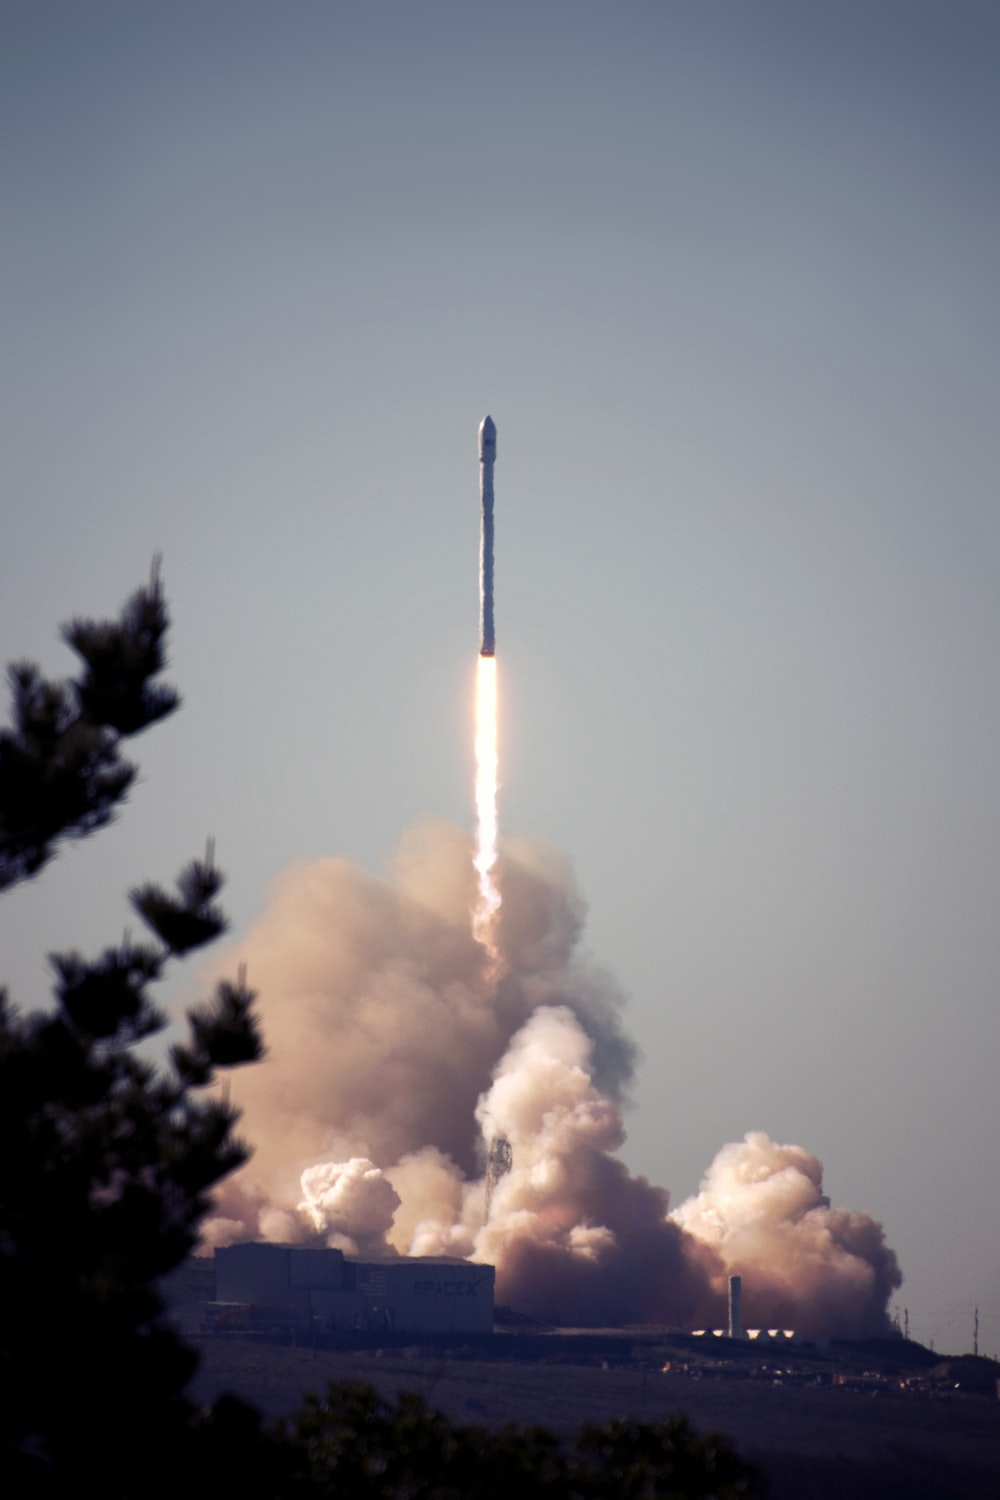 white missile launch during daytime